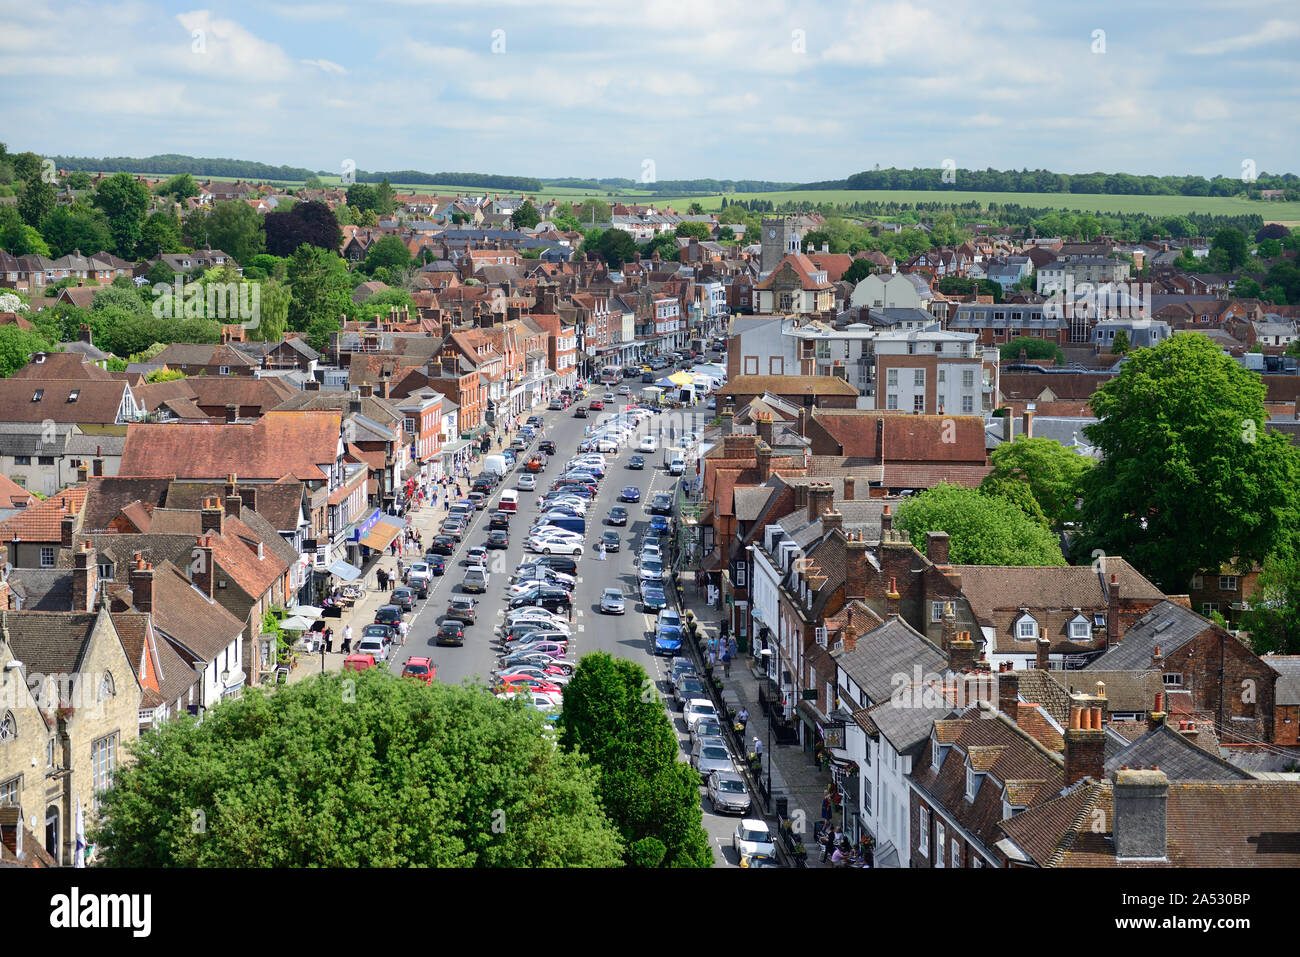 Rooftop view across the market town of Marlborough, Wiltshire, looking along the High Street from the tower of St Peter's church. Stock Photo